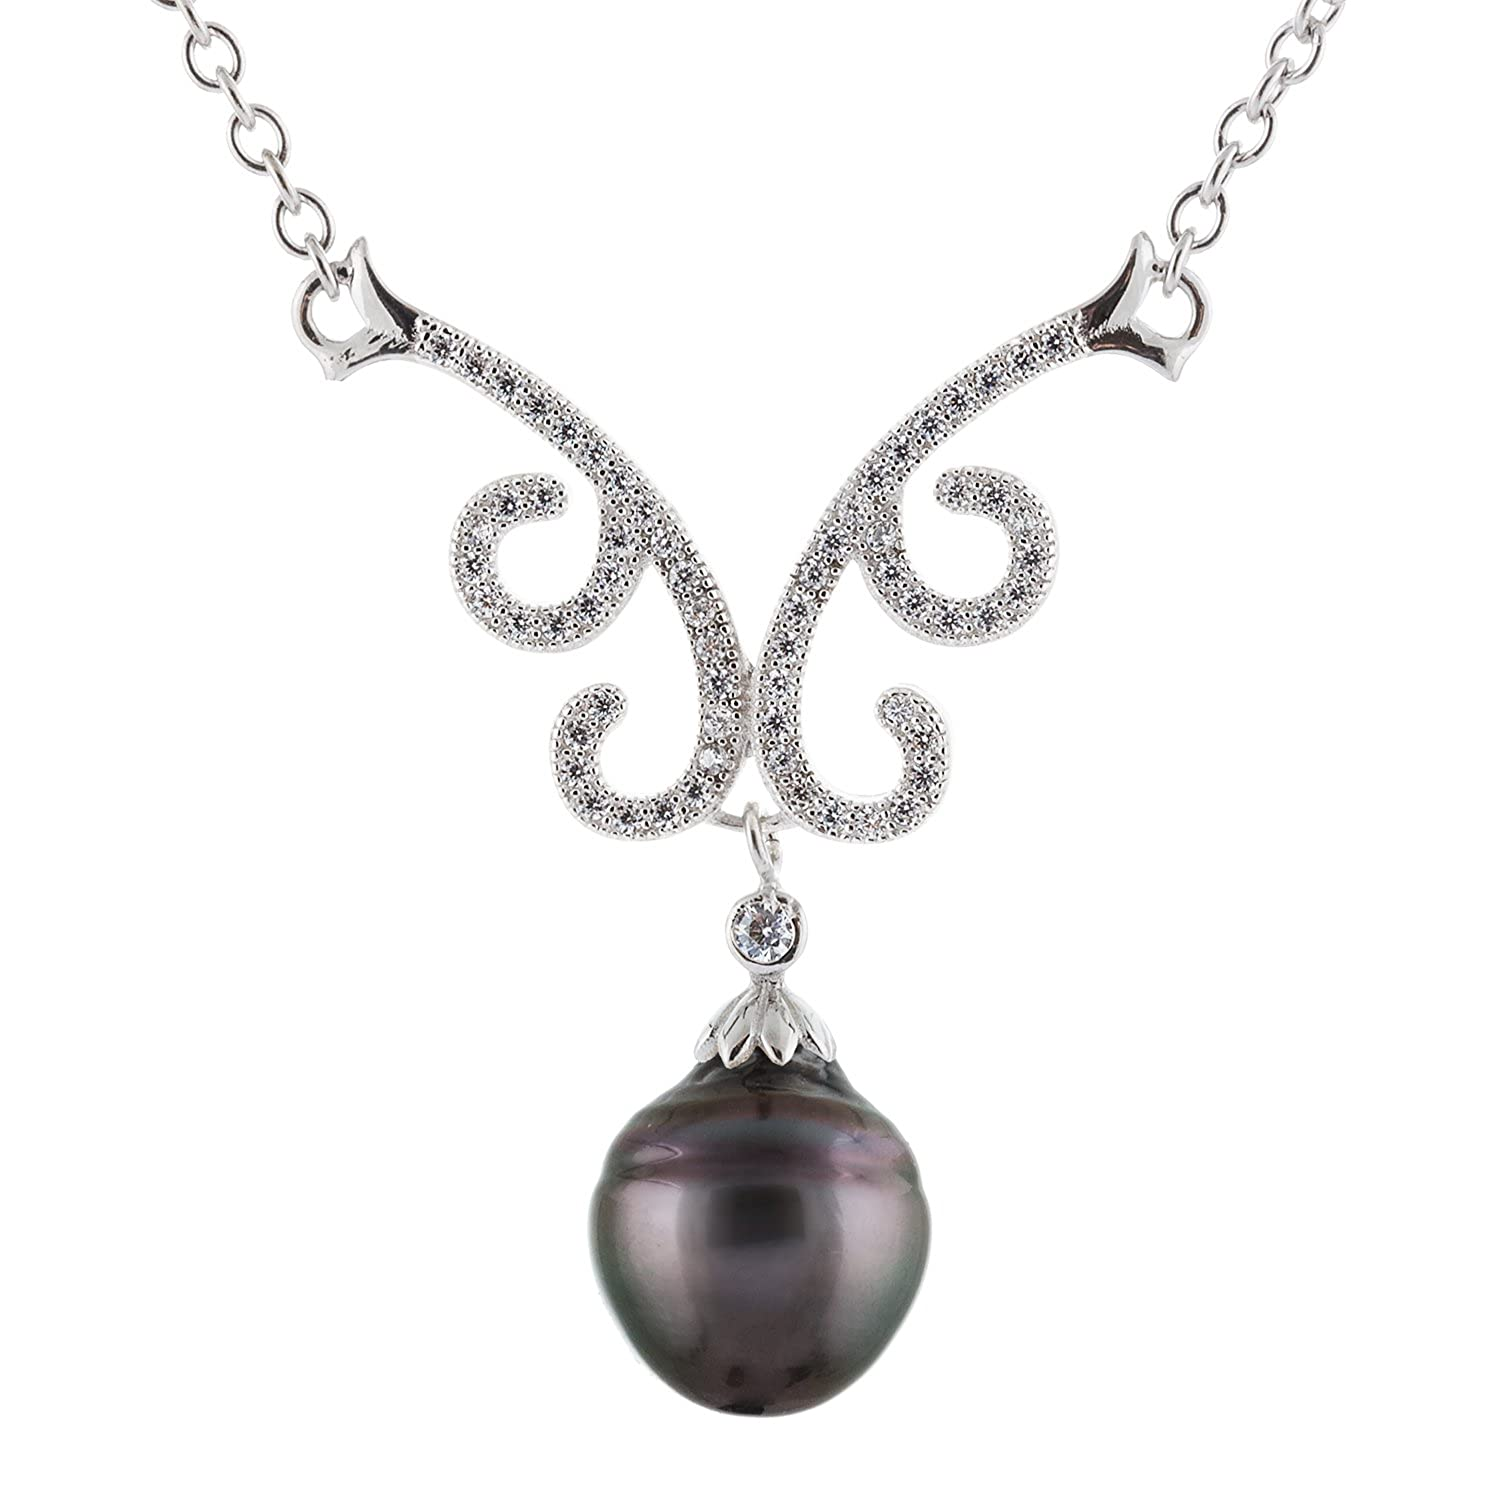 9-10mm Black Tahitian Cultured Pearl 925 Sterling Silver Rhodium-Plated Collar Fancy Twirl Necklace CZ Accents Handpicked AAA